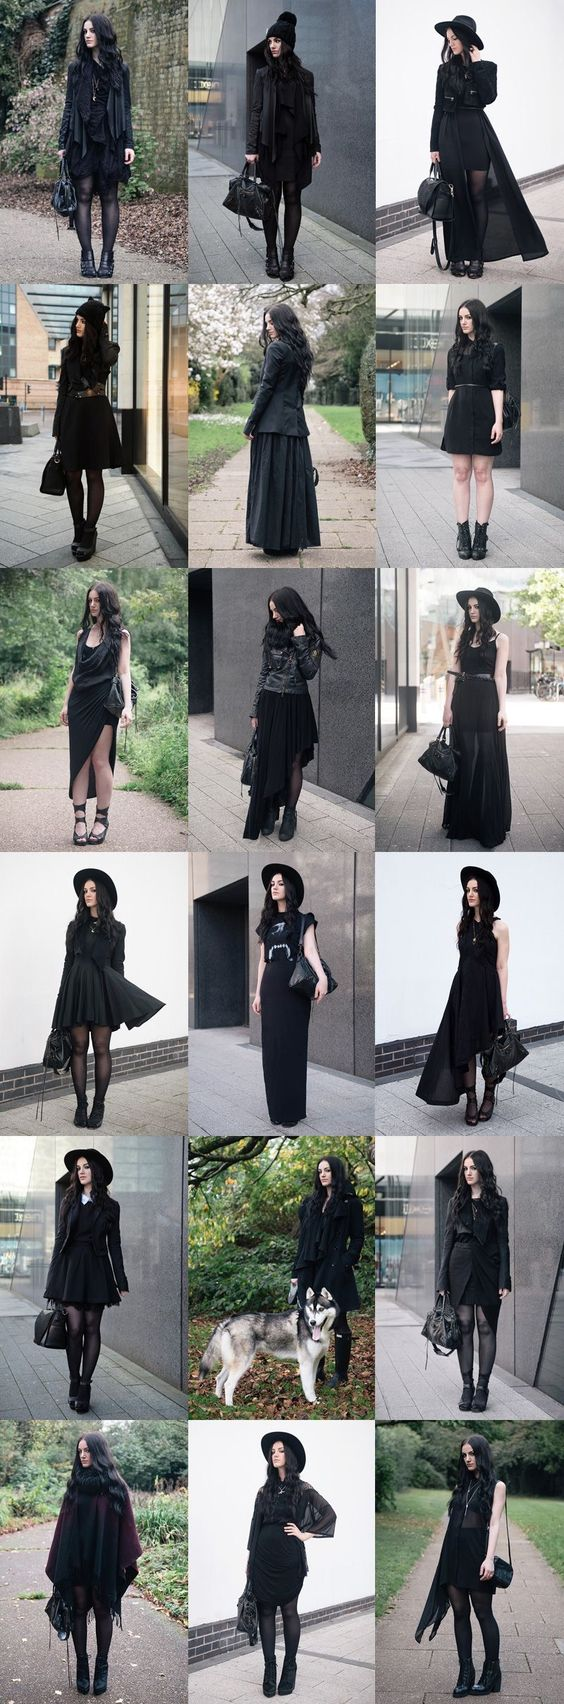 outfits negros